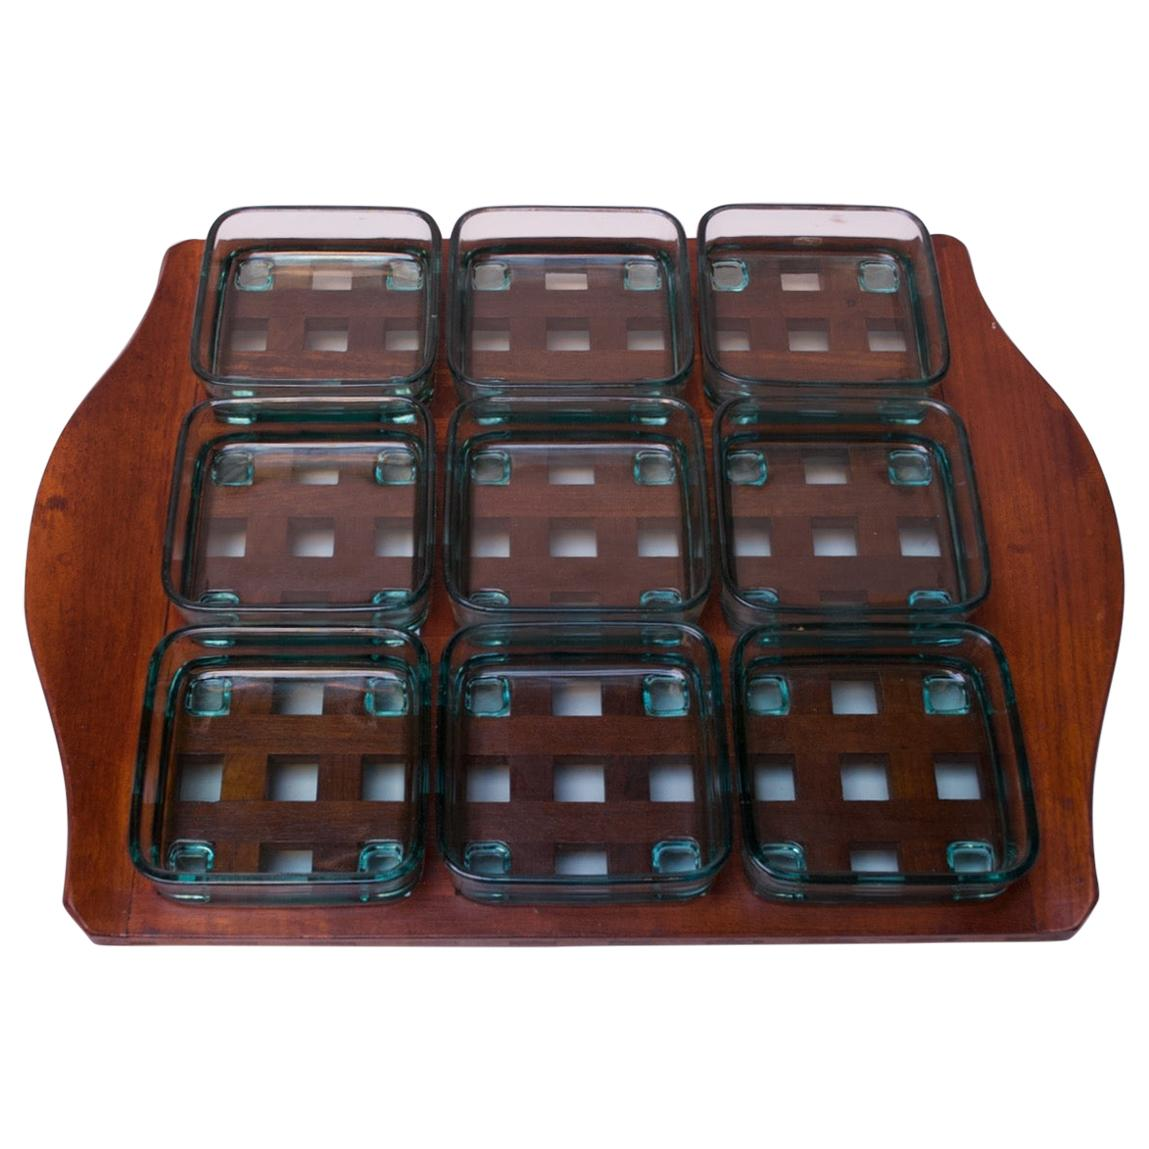 1960s Jens Quistgaard Dansk Teak Serving Tray with Glass Inserts New in Box